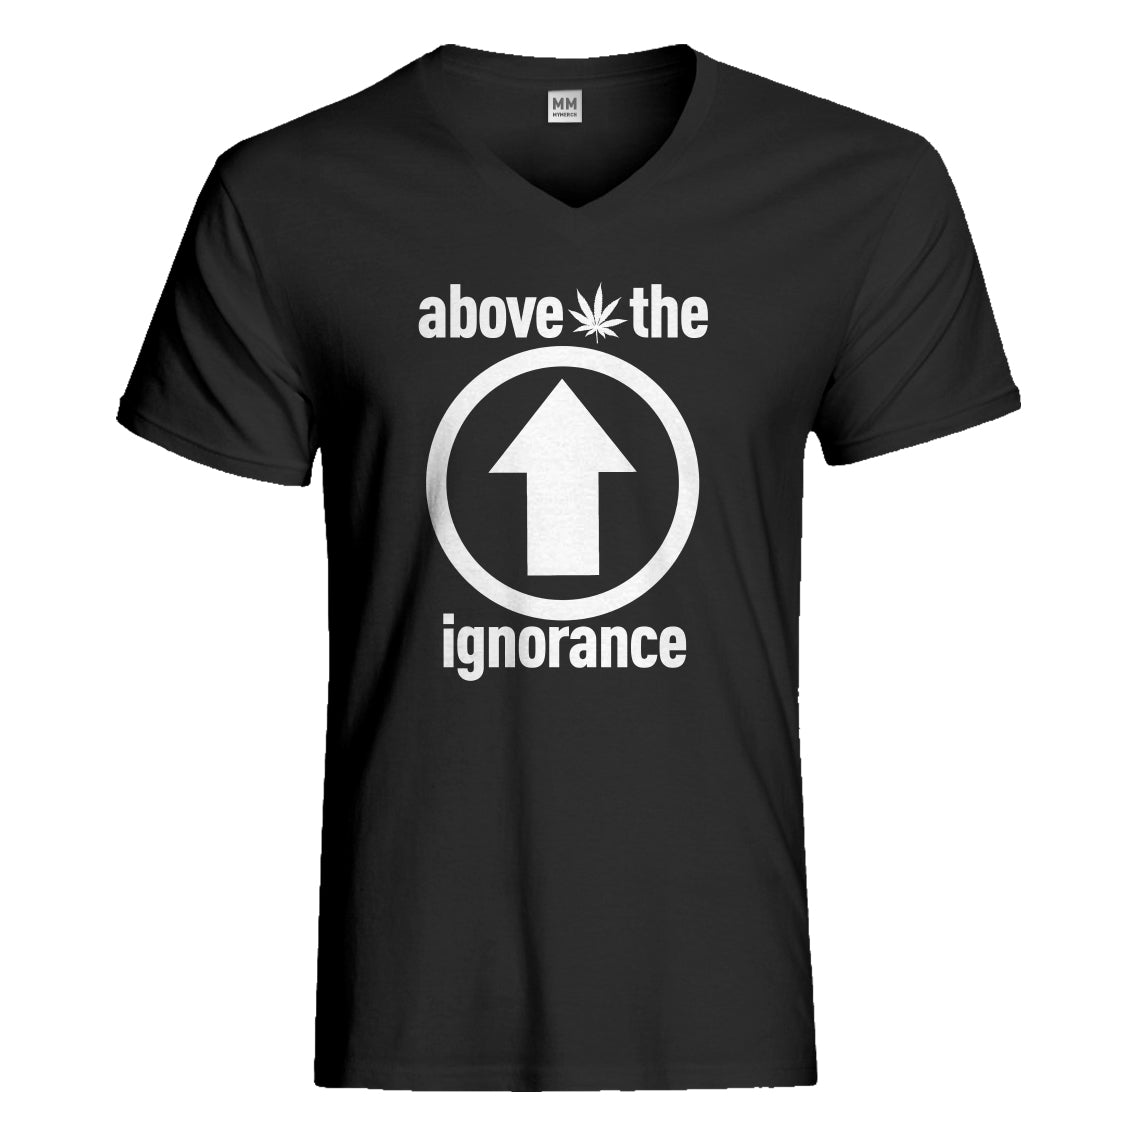 Mens Above the Ignorance Vneck T-shirt